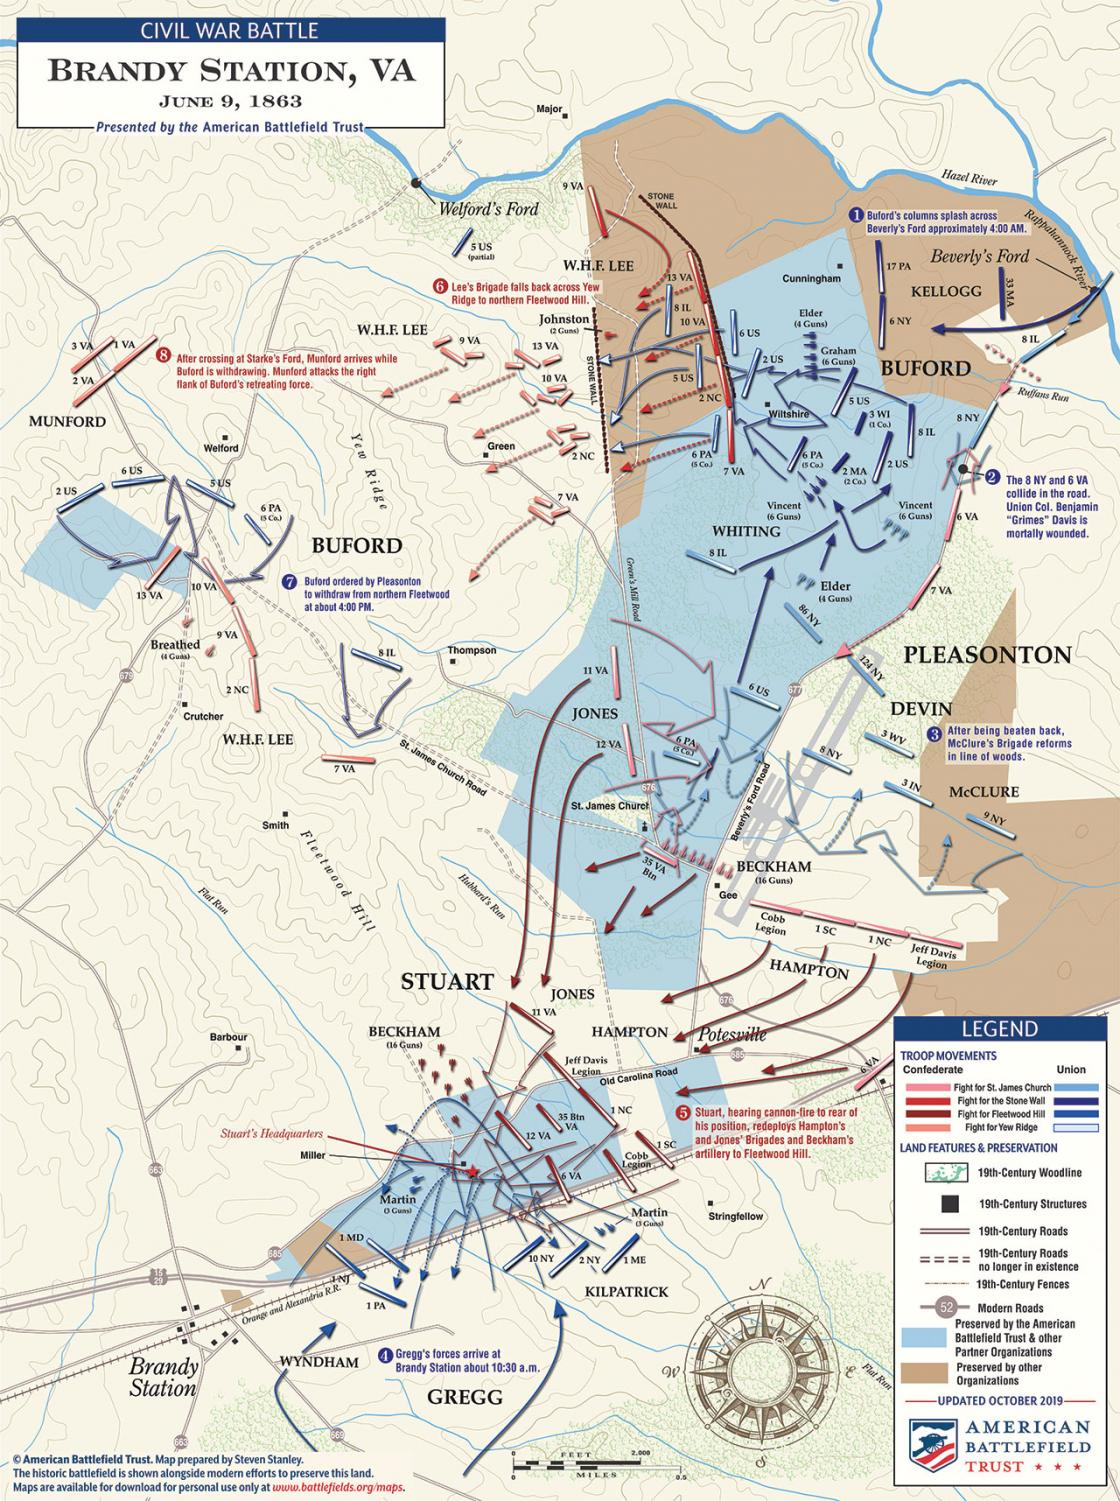 Brandy Station - June 9, 1863 (October 2019)